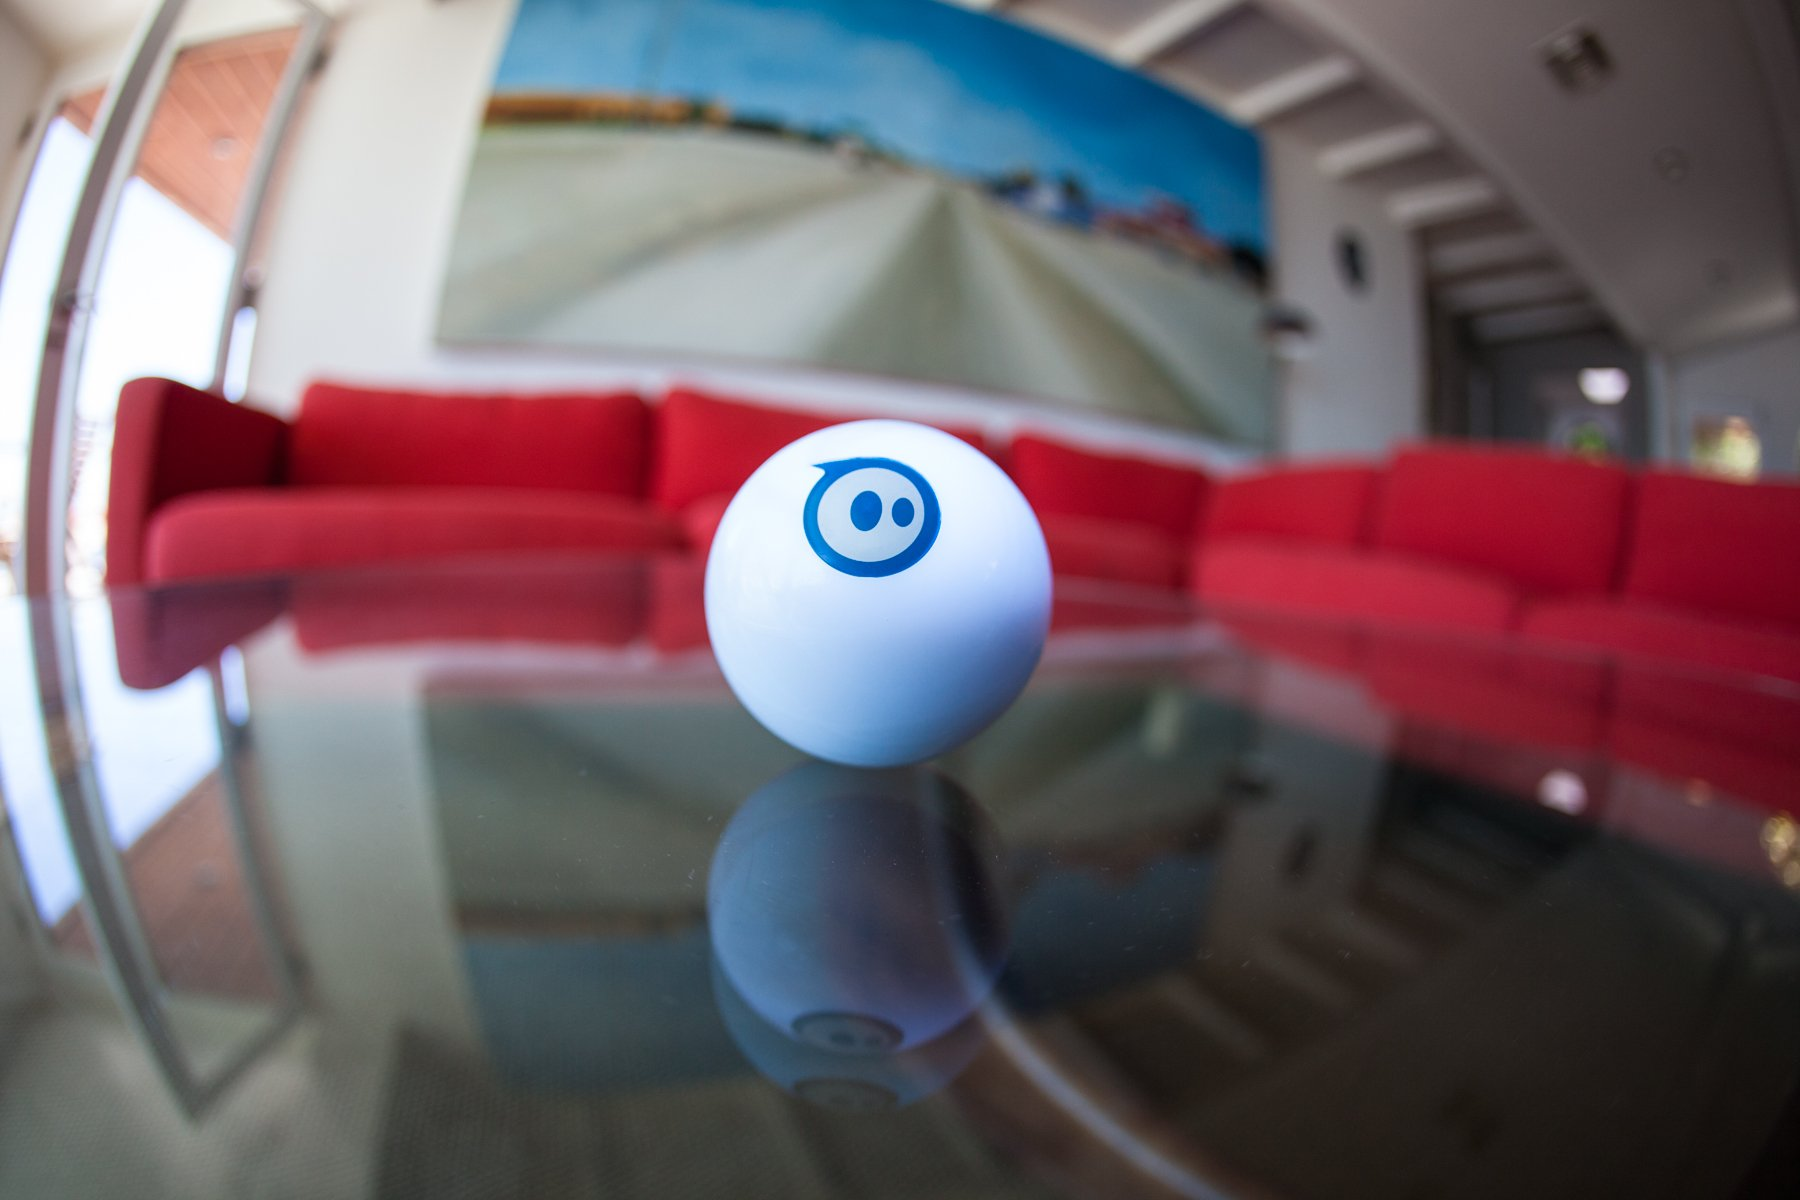 Sphero iOS and Android App Controlled Robotic Ball - Retail Packaging - White (Discontinued by Manufacturer) by Sphero (Image #2)